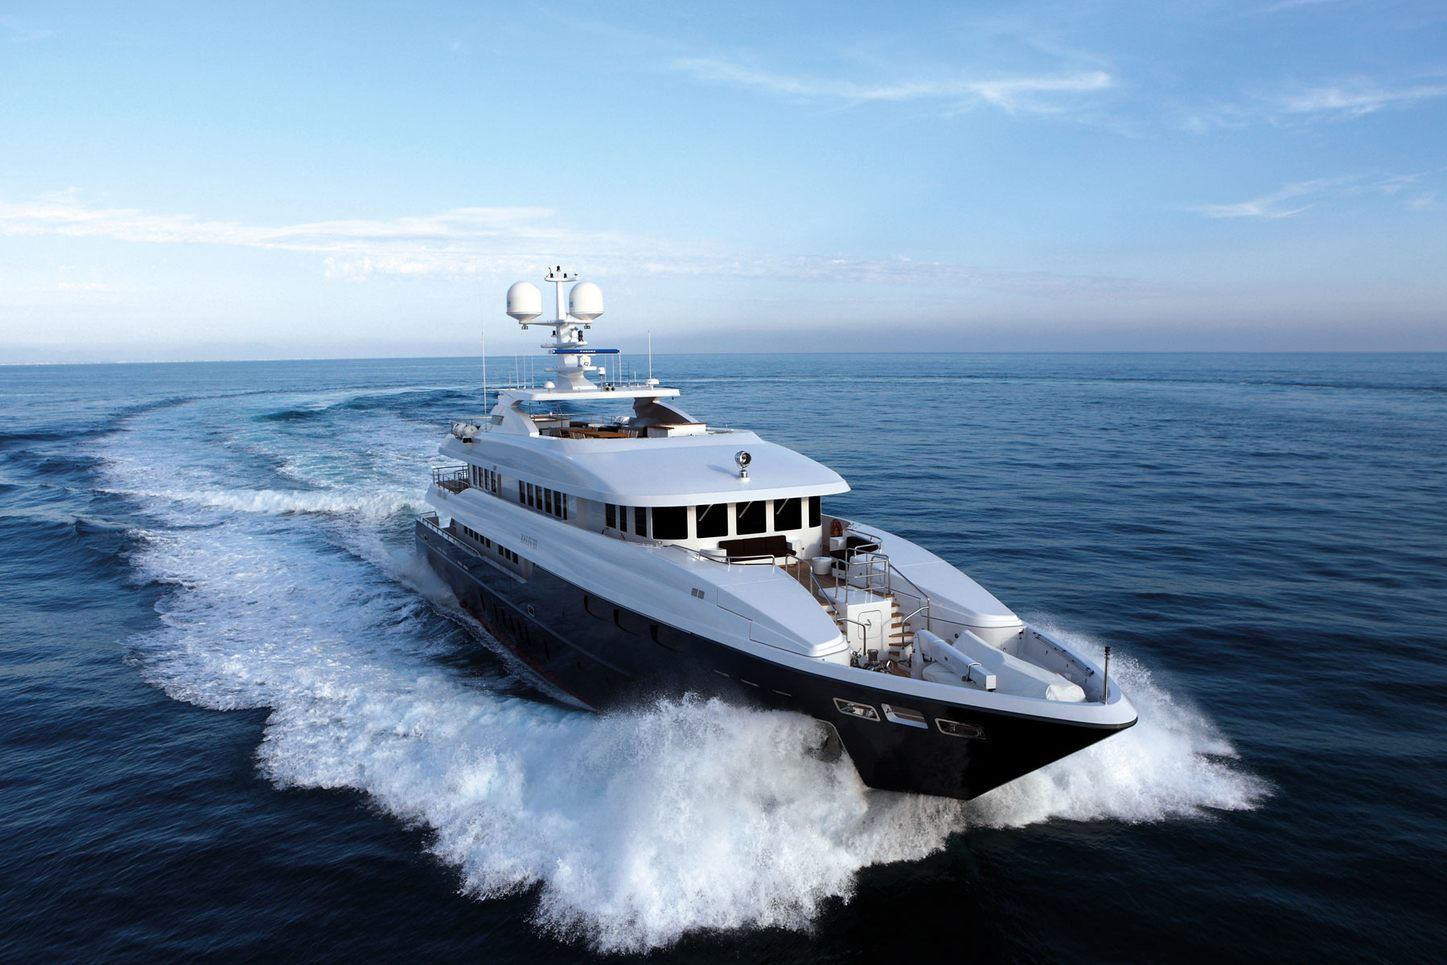 charter yacht zaliv iii from mondomarine on the water, head-on angle